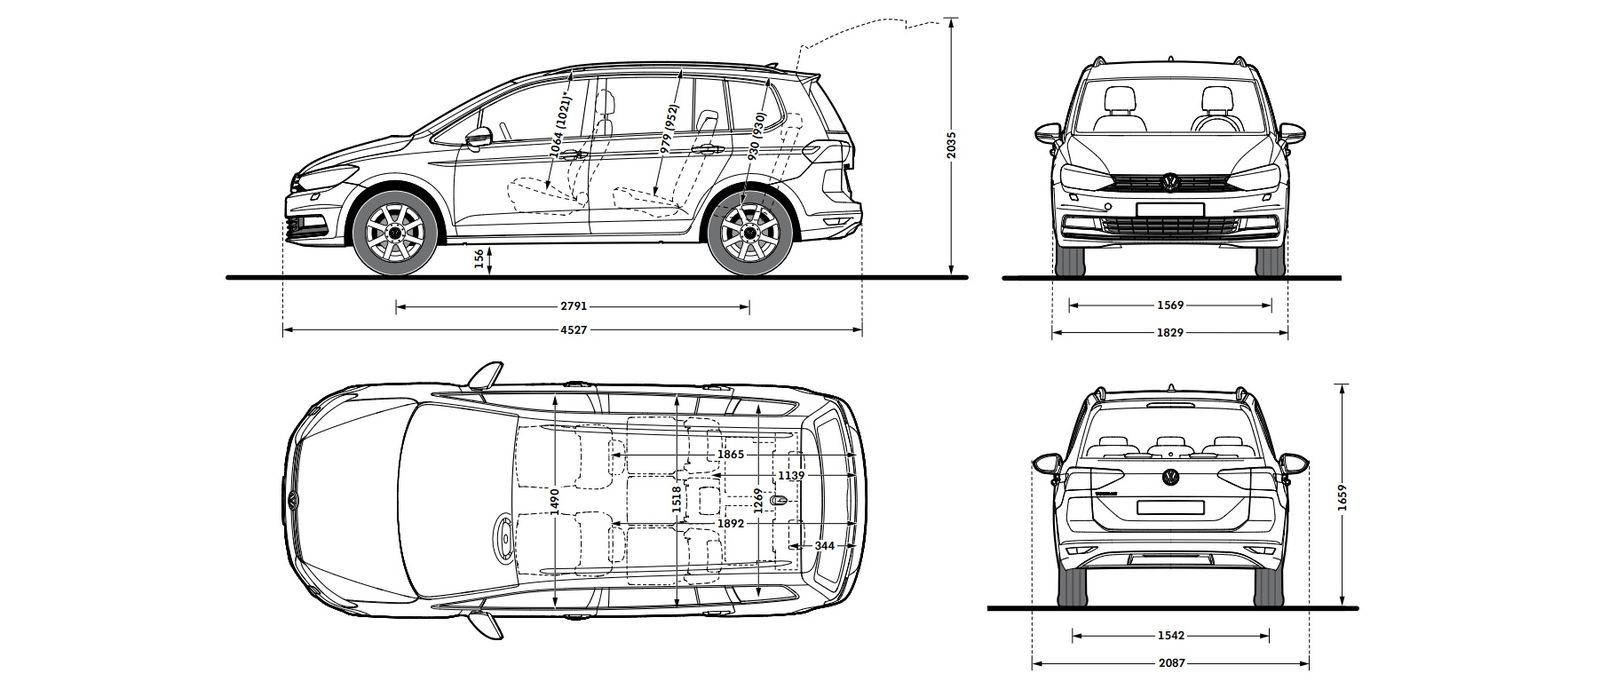 Princess Daisy Kleurplaat additionally Chevrolet Ecotec Engine 1 8 Diagram as well  additionally Volkswagen Touran Dimensions 0406 also Elect 20. on nissan micra 2011 specs